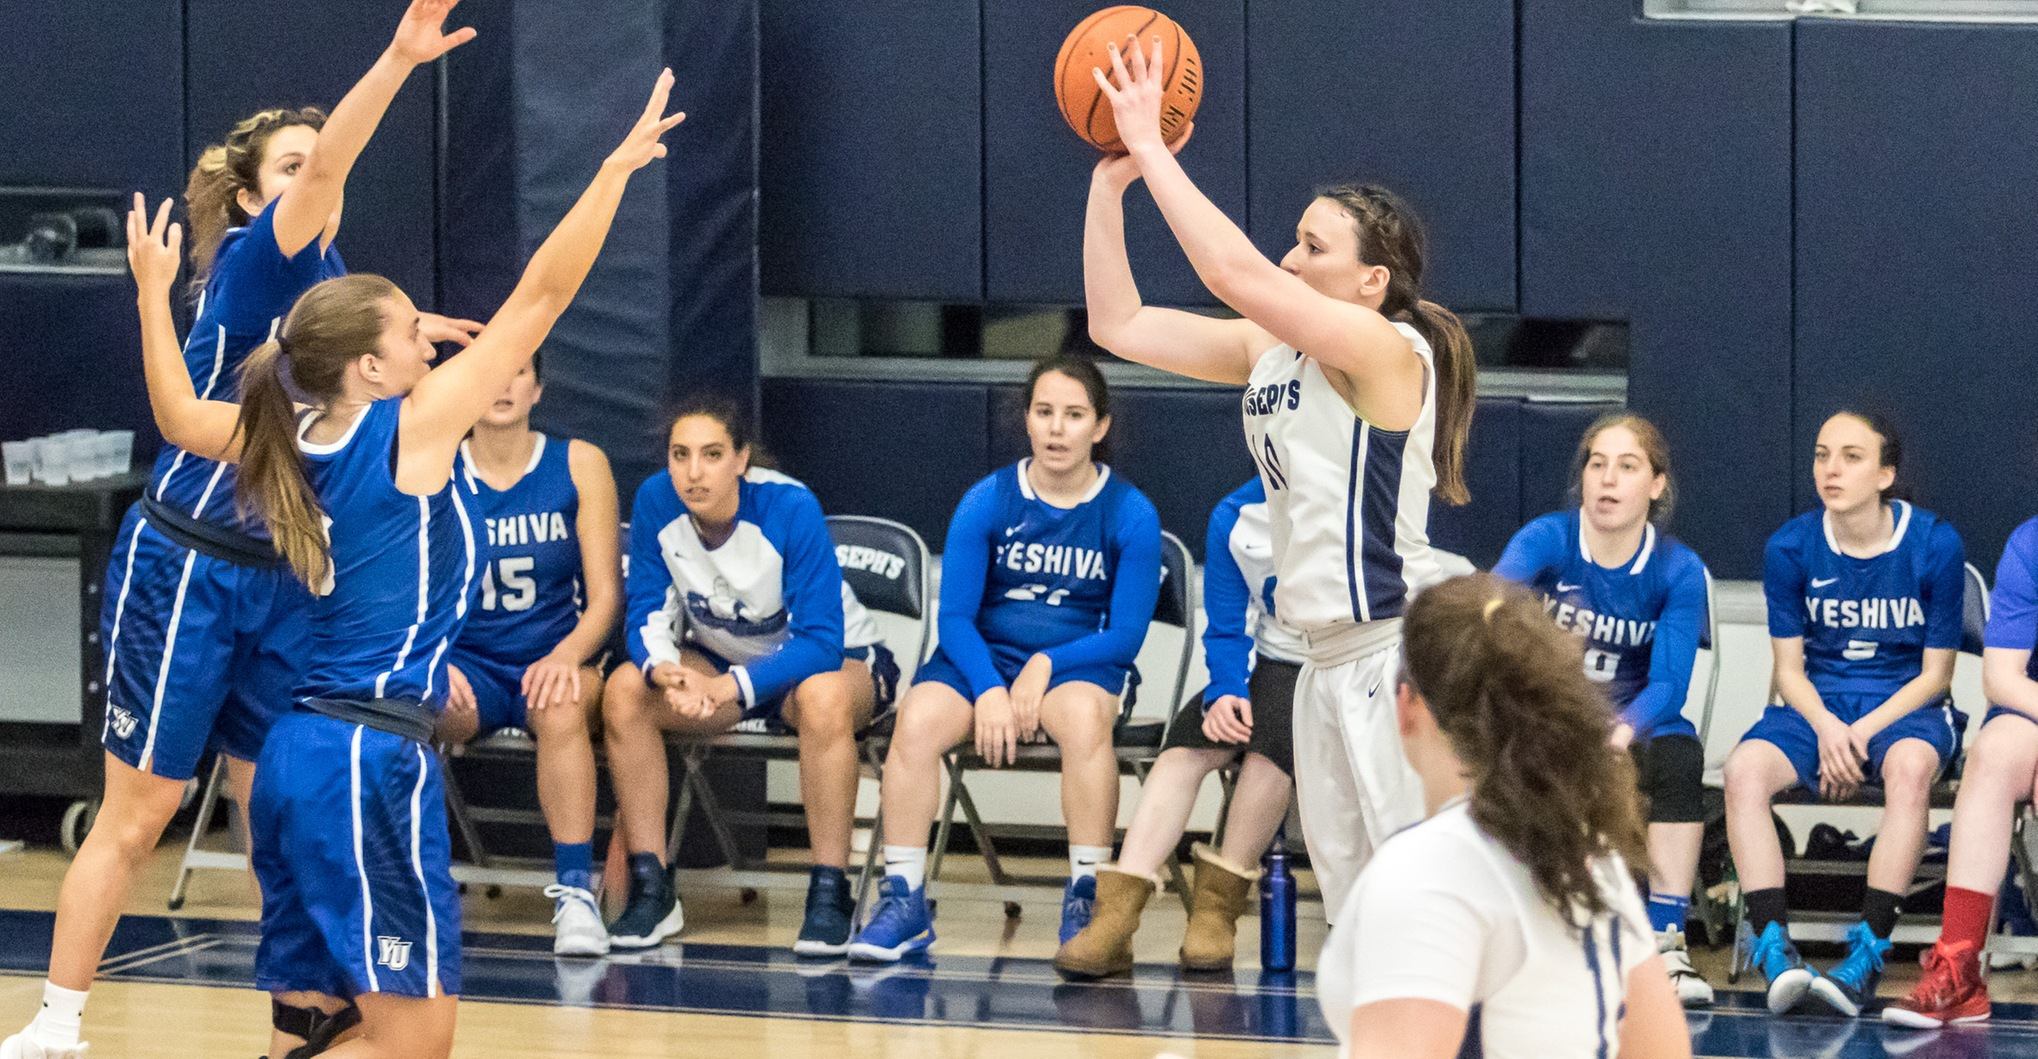 Women's Basketball Nearly Upsets First-Place Mount Saint Mary; Bears Still Clinch Playoff Berth